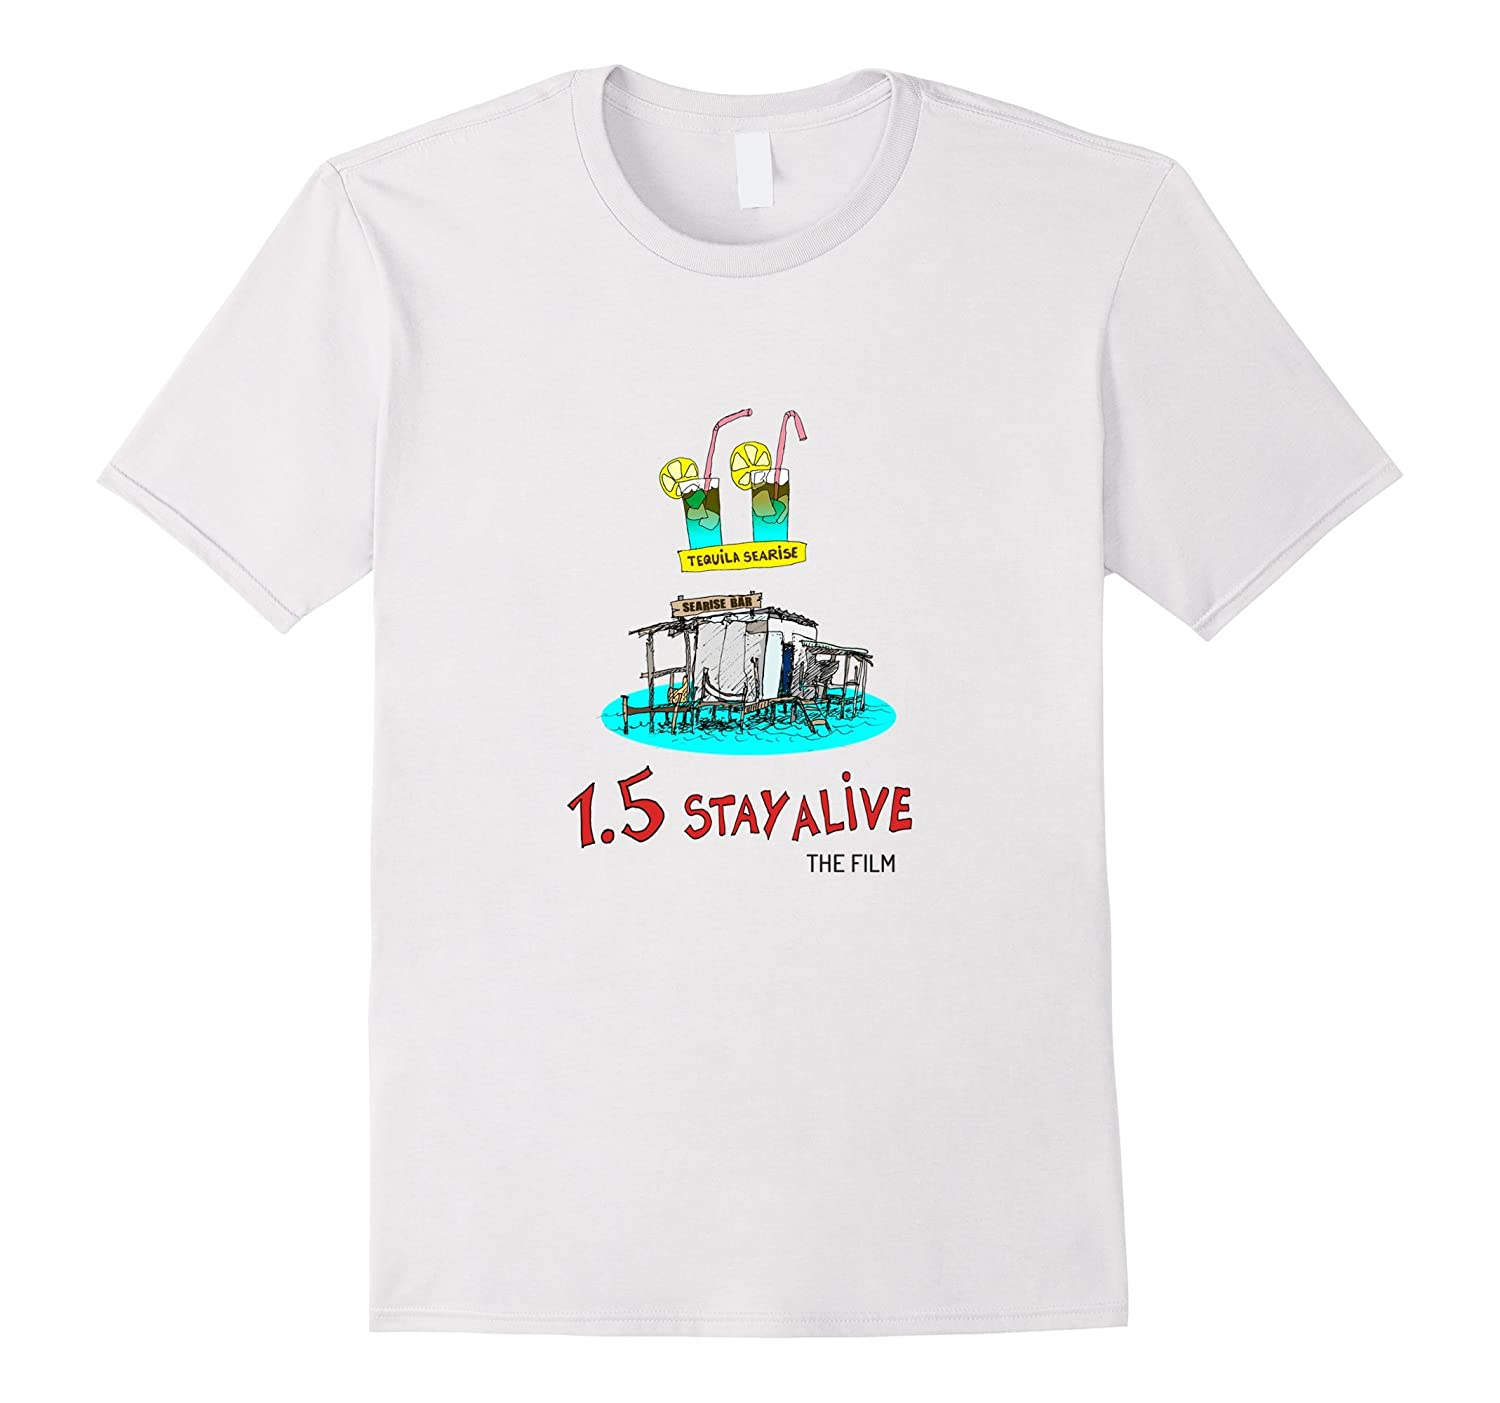 1.5 Stay Alive - Sea Level Rise in the Caribbean Tshirt-Rose